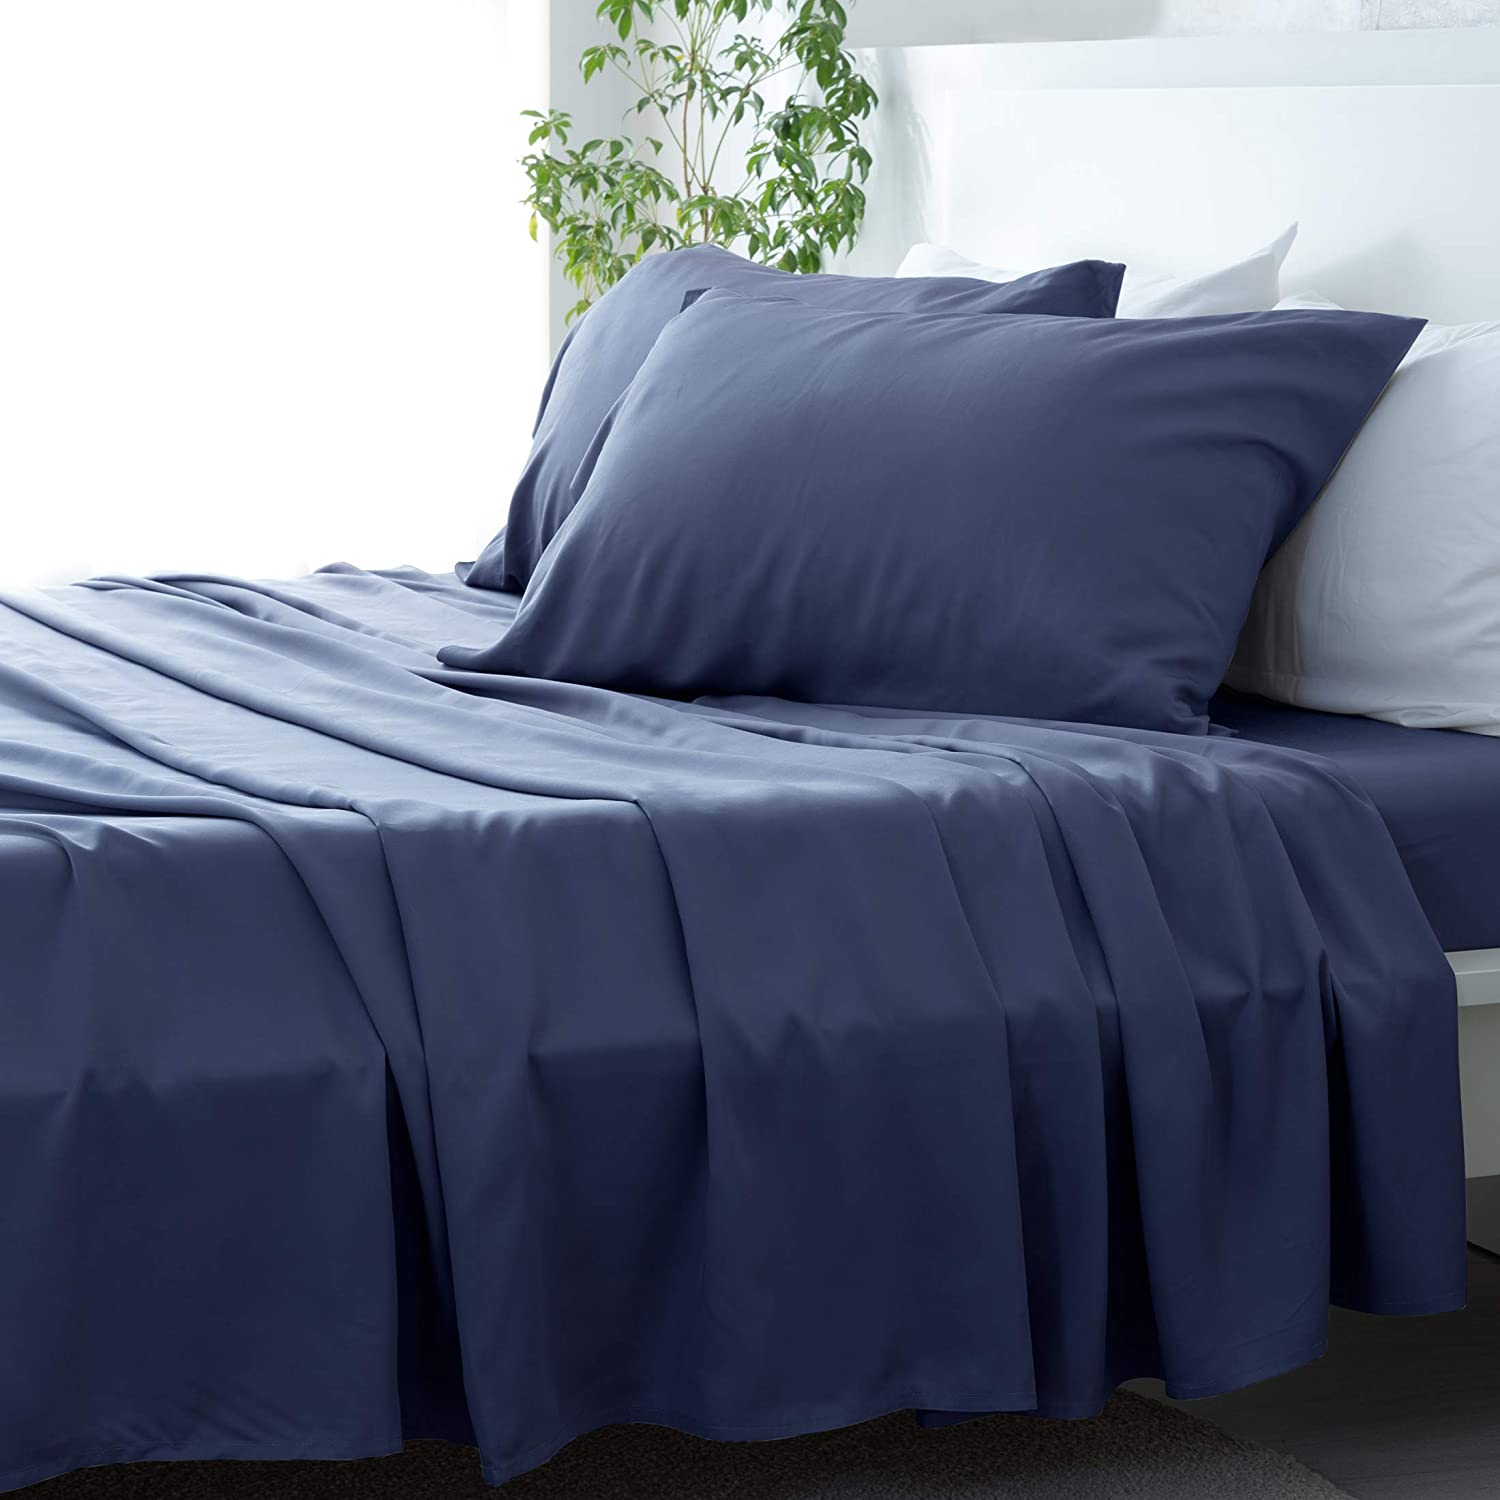 David's Home Pure Bamboo Sheets Set Twin Size Navy, 100% Bamboo Cooling Sheets Set with Deep Pocket, Silky Soft and Breathable Bedding Sheets Set, 4PCS , Hypoallergenic